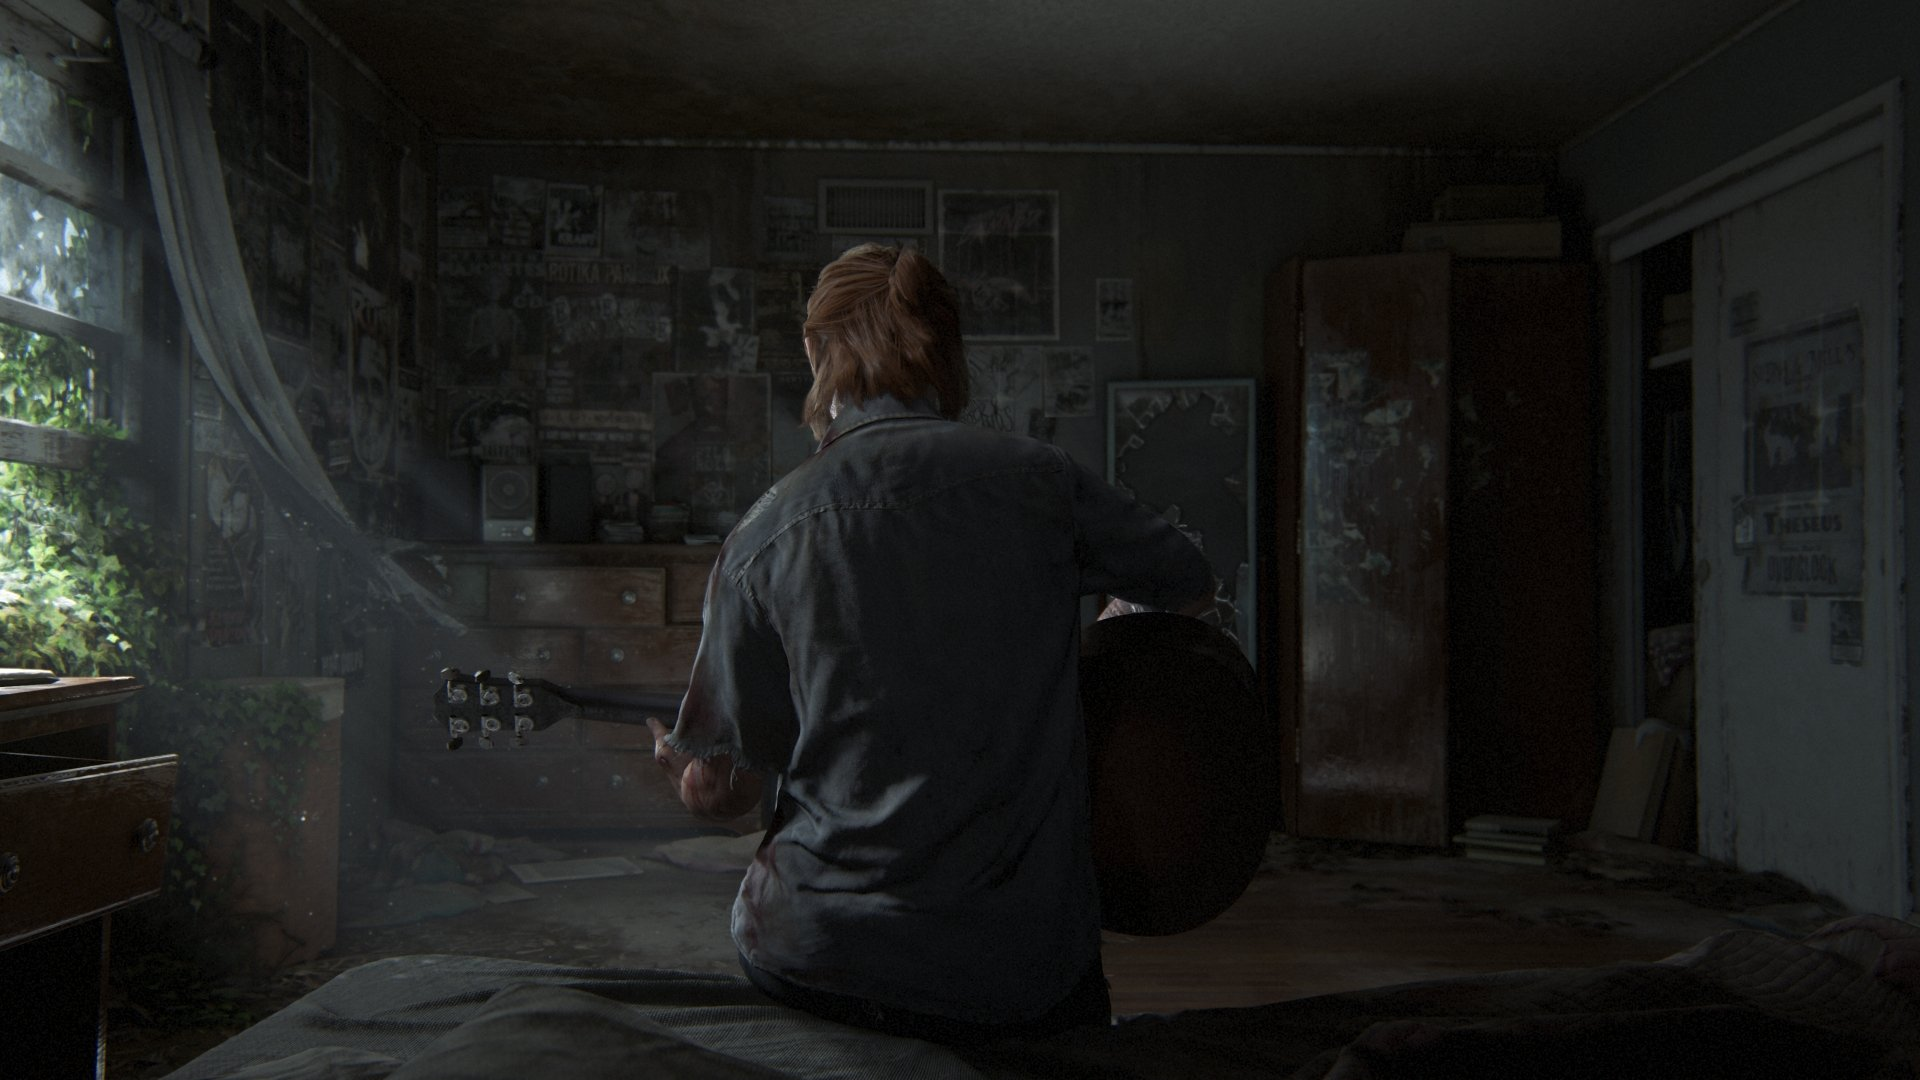 62 The Last of Us Part II HD Wallpapers Background Images 1920x1080